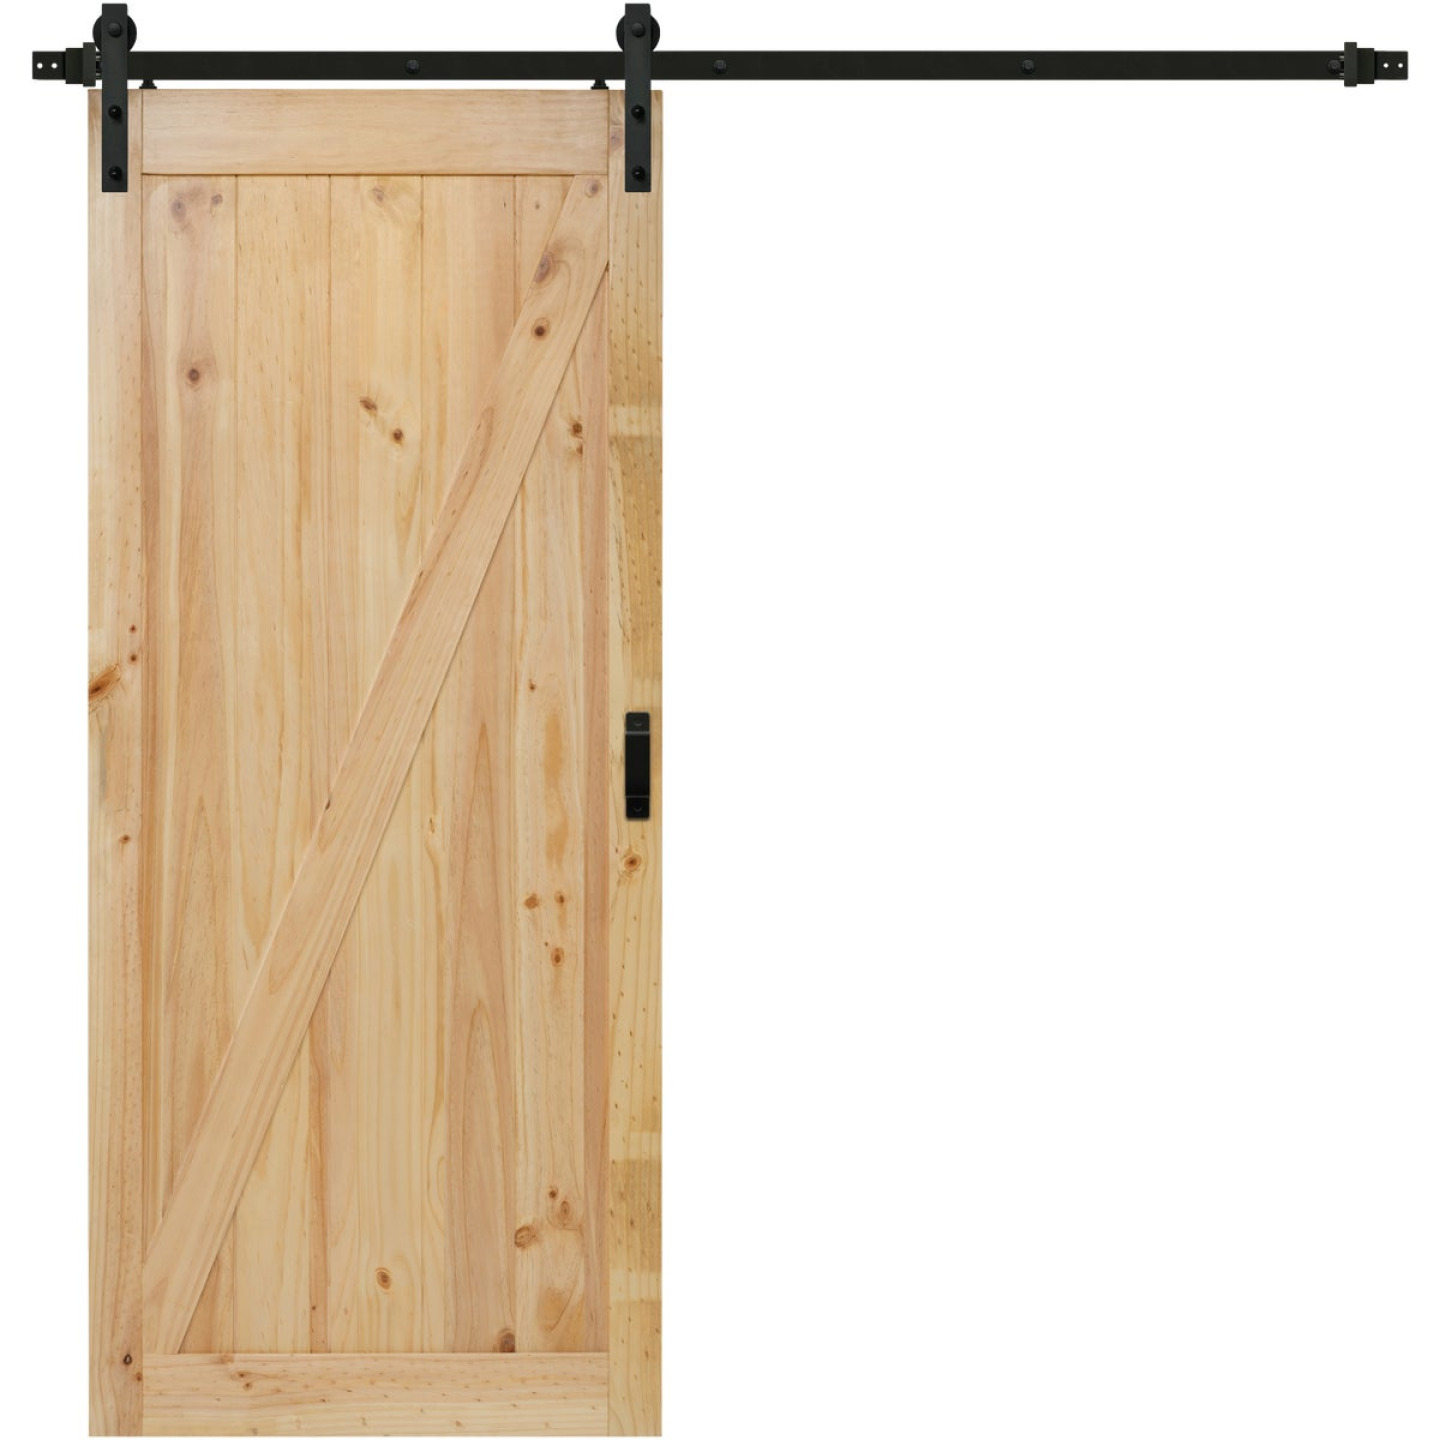 Renin Salinas 36 In. W x 84 In. H Easy-Build Z-Style Unfinished Wood Plank Barn Door Image 1